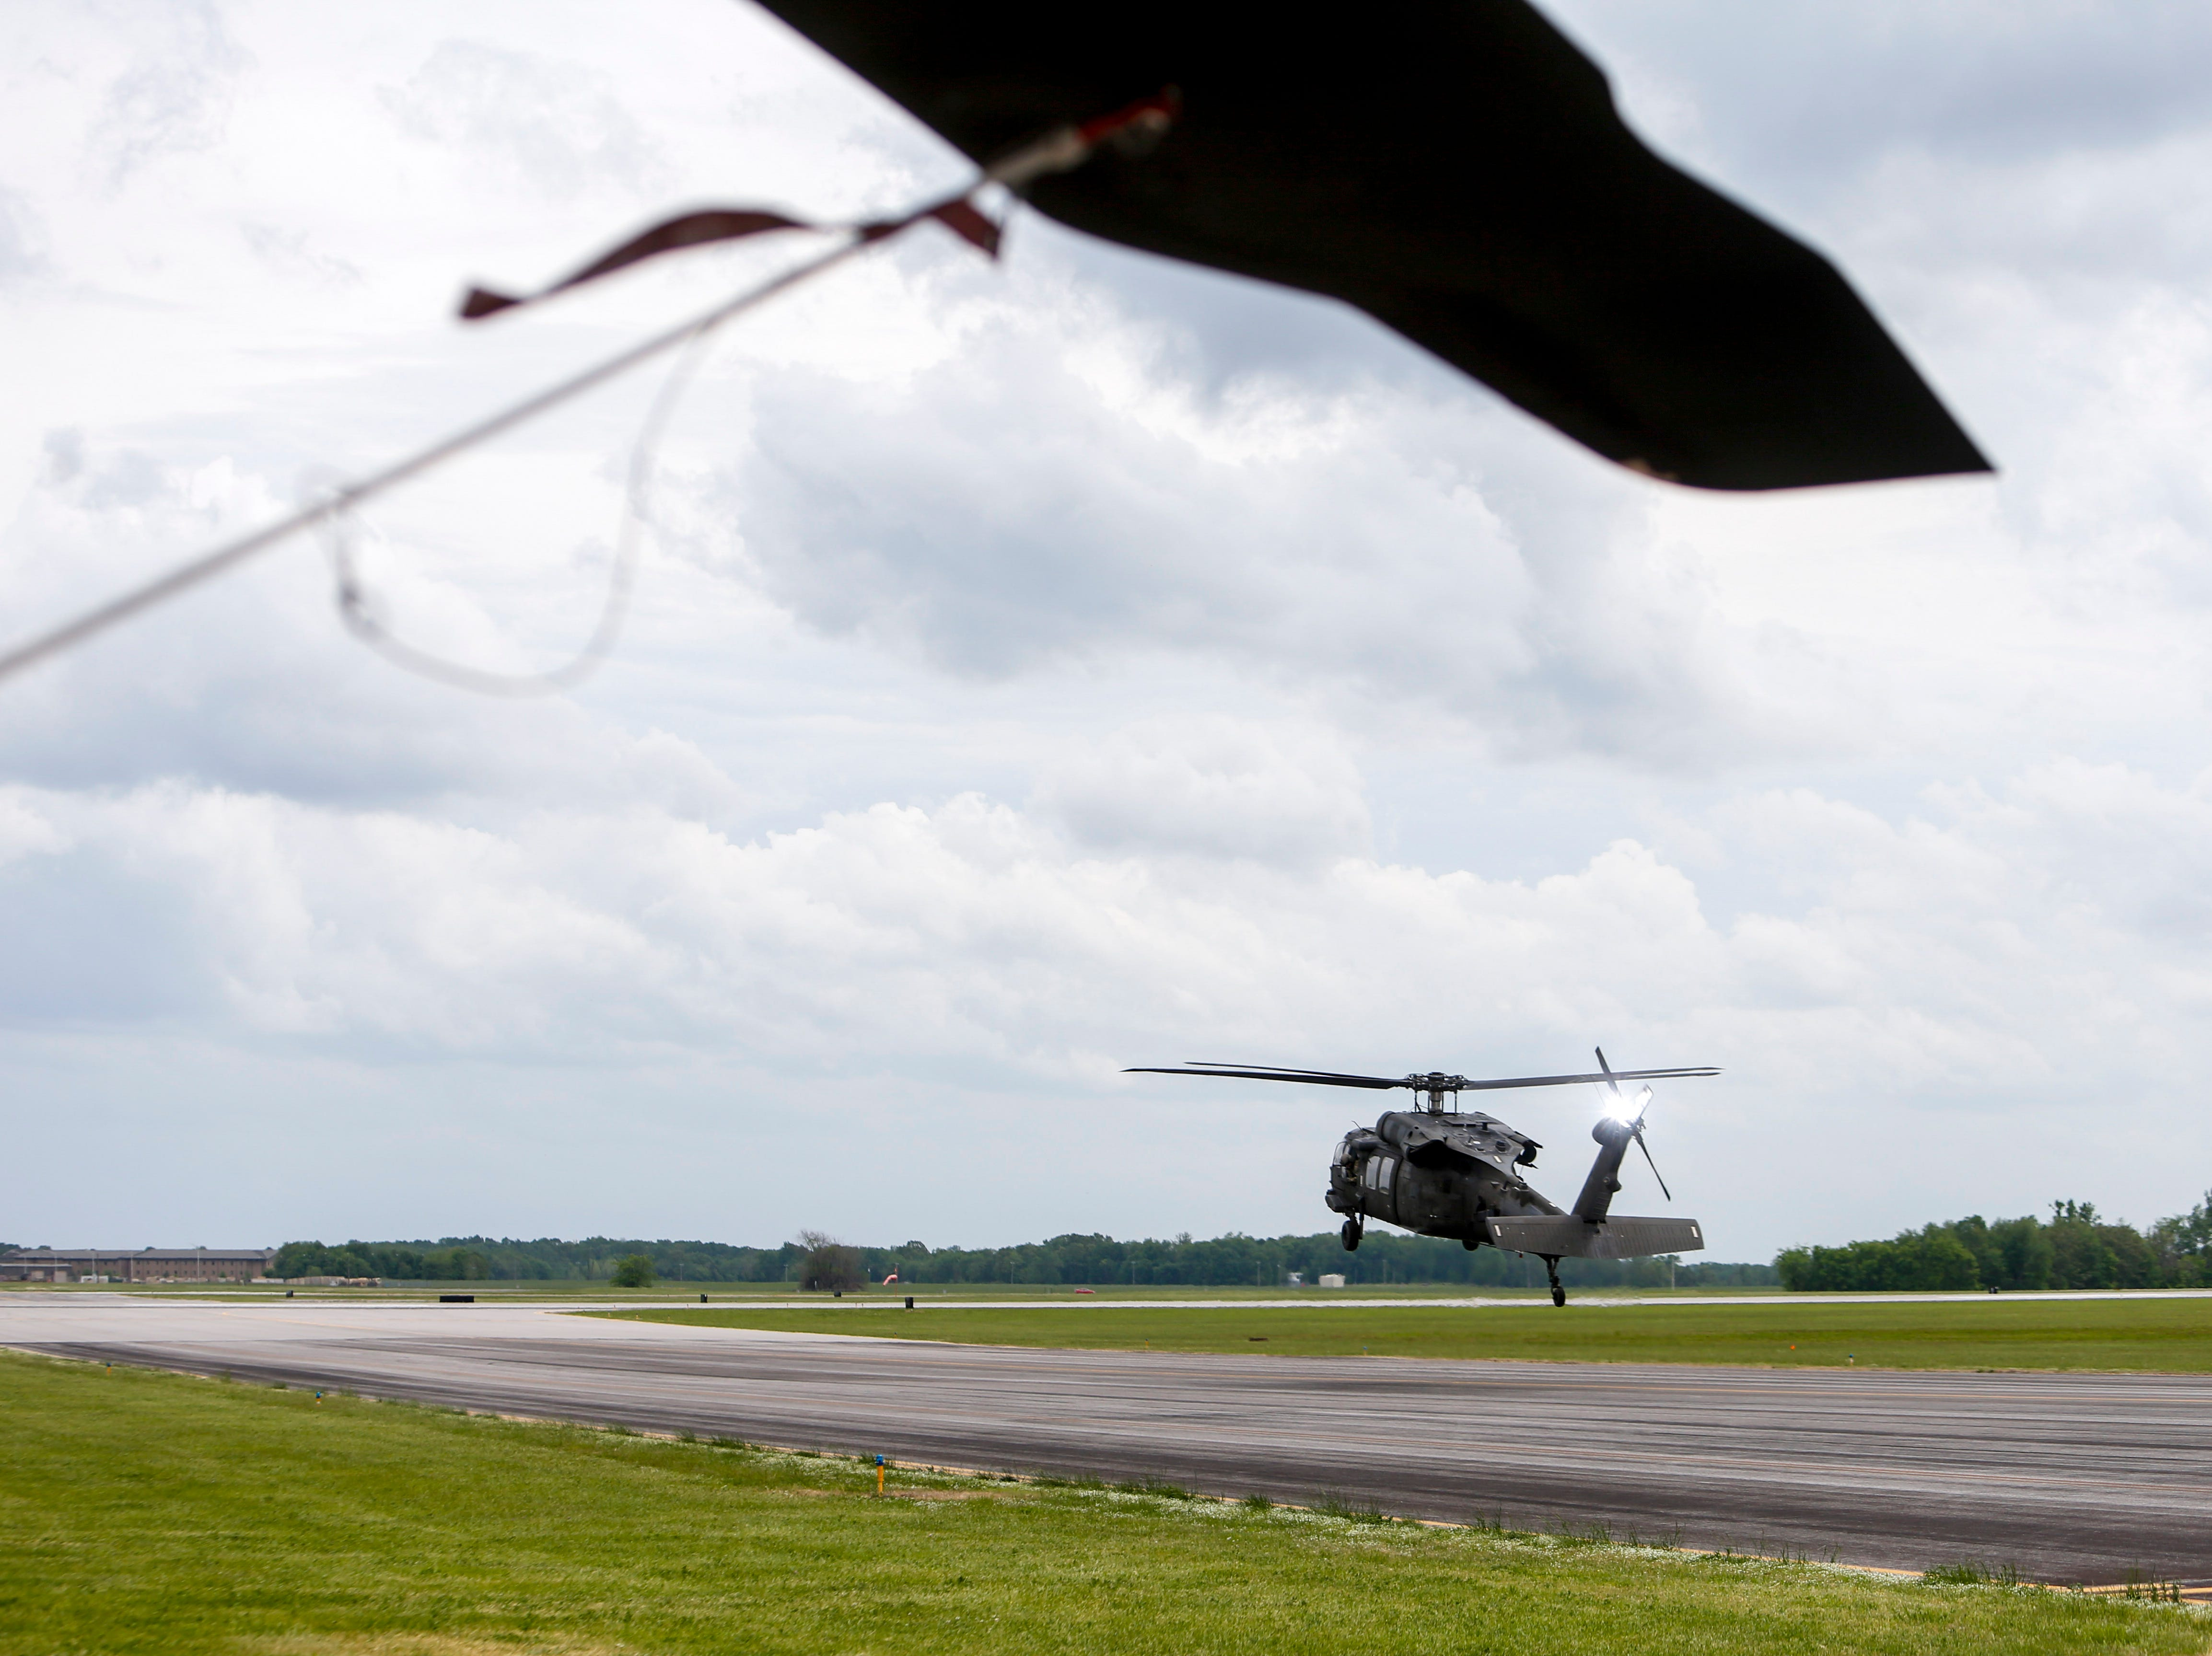 A Black Hawk helicopter hovers a short distance above the ground during a test flight at Campbell Army Airfield in Fort Campbell, KY., on Wednesday, May 1, 2019.